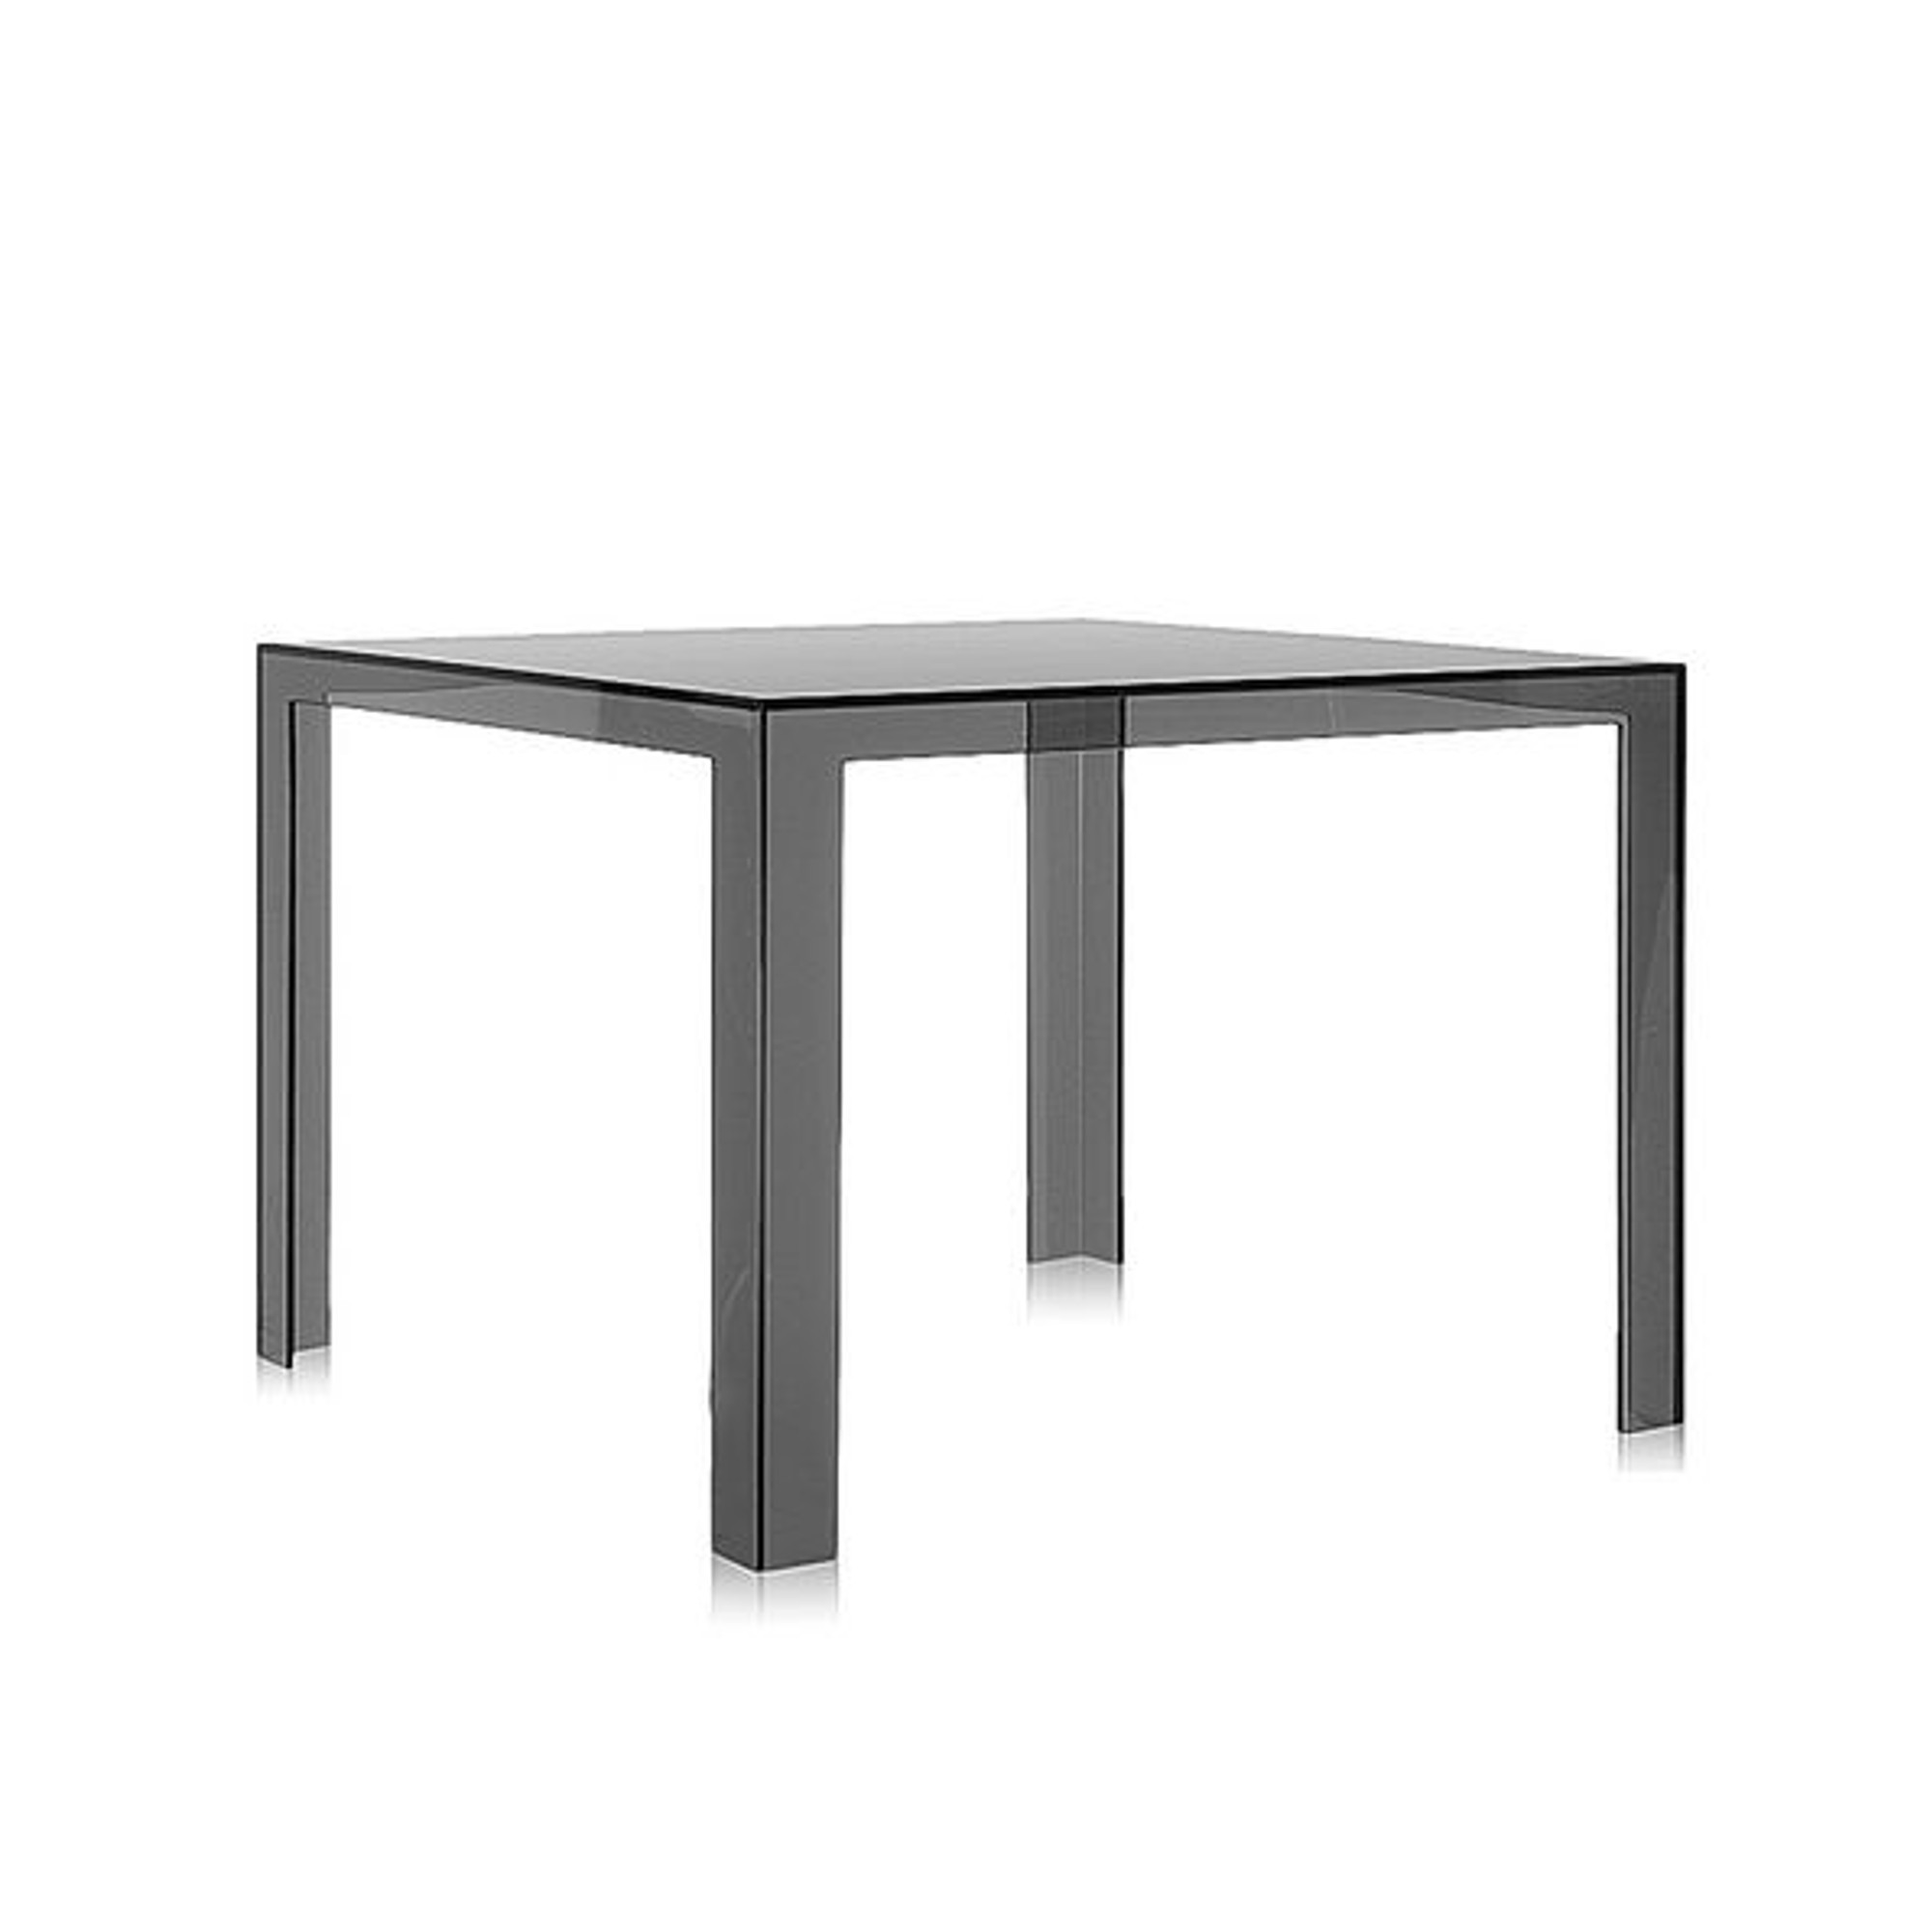 INVISIBLE TABLE, by KARTELL